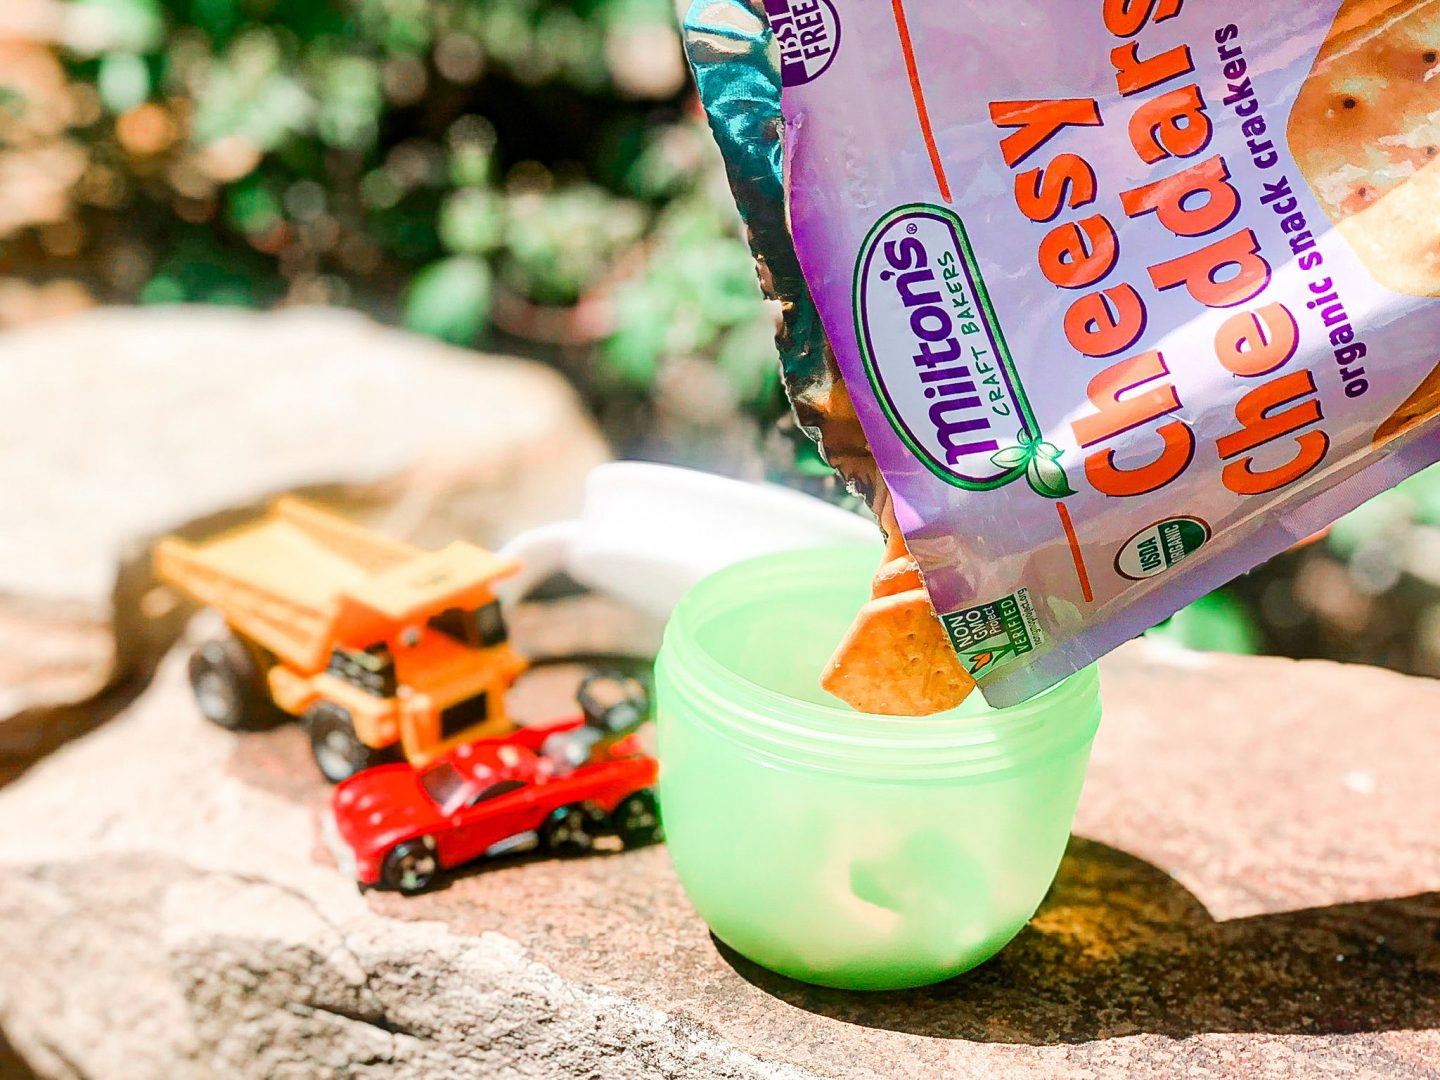 Milton's cheesy cheddars, snacks for kids